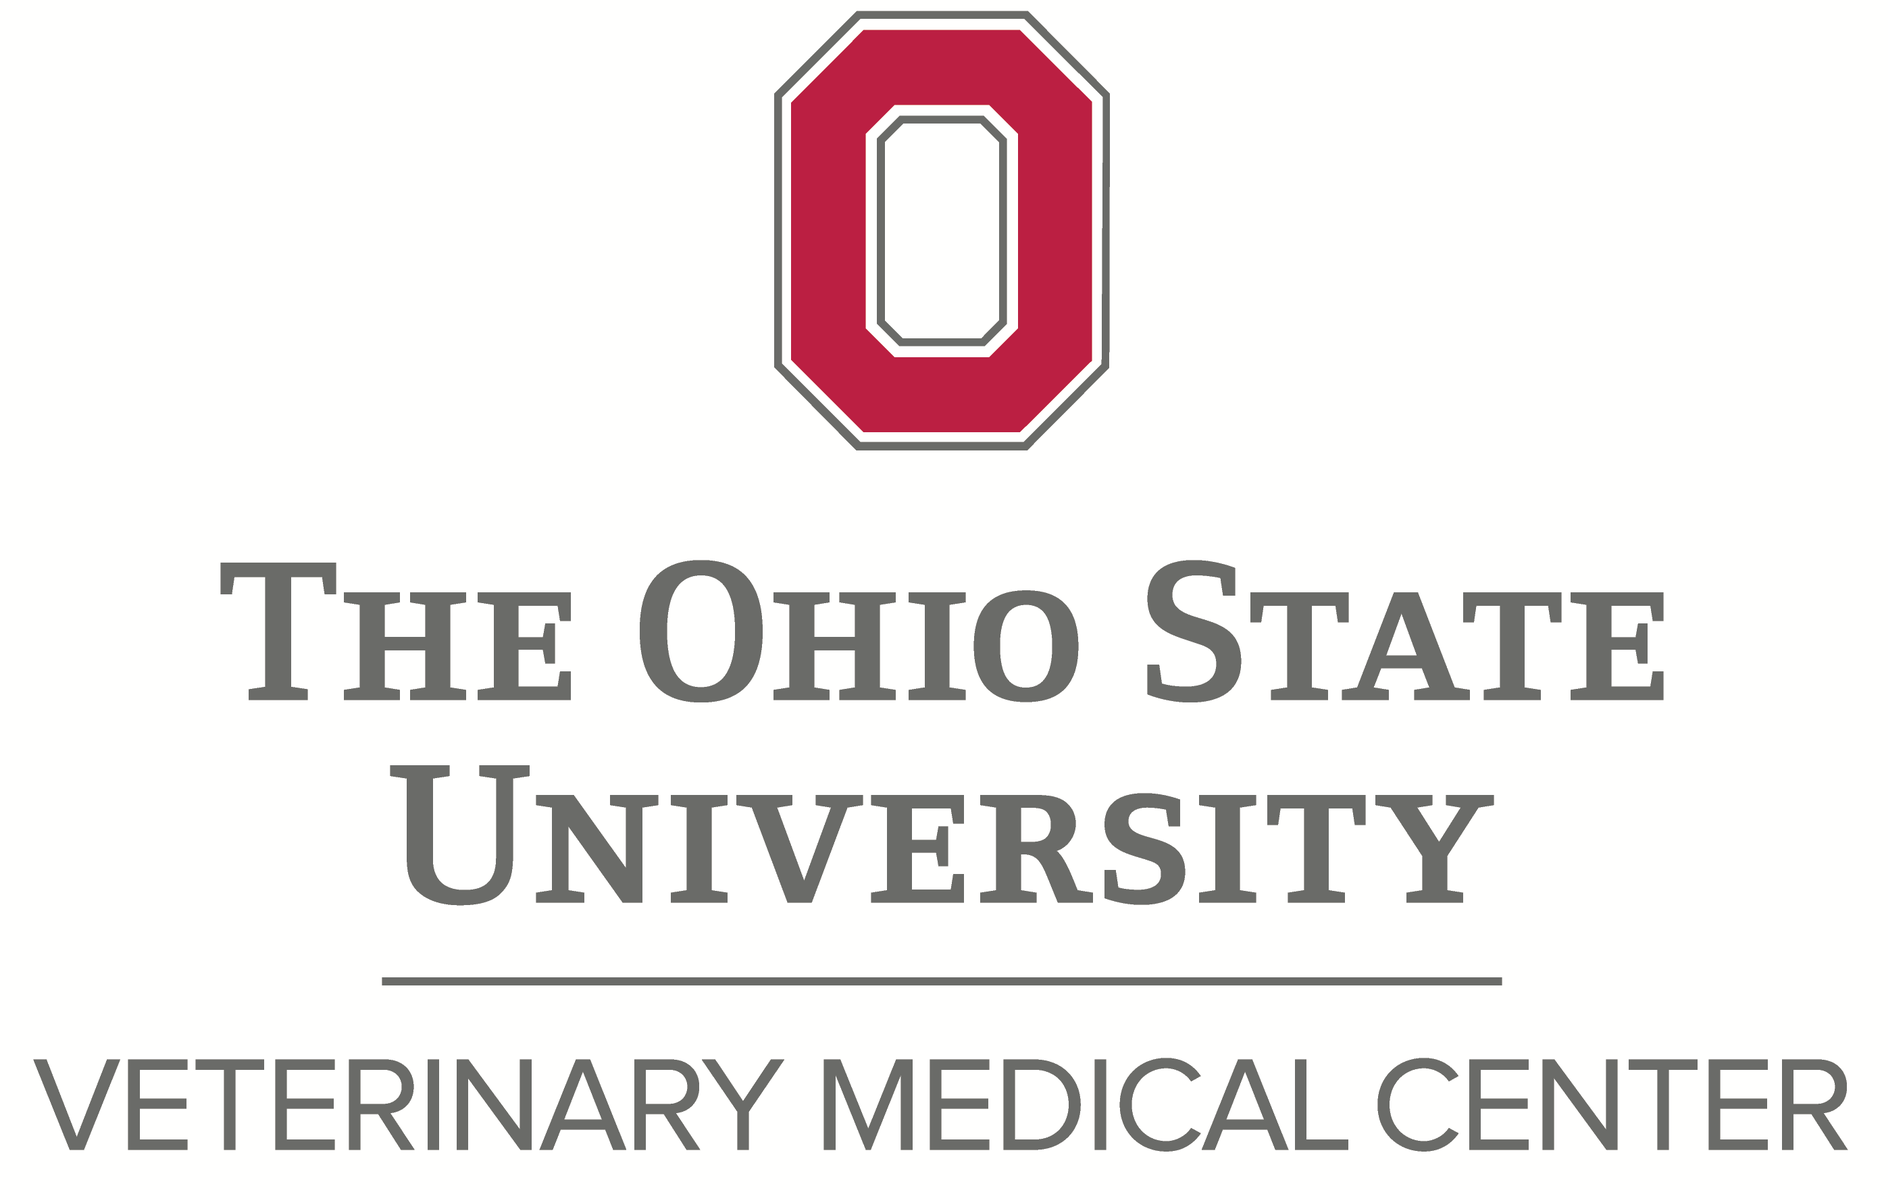 Copy of The Ohio State University VMC